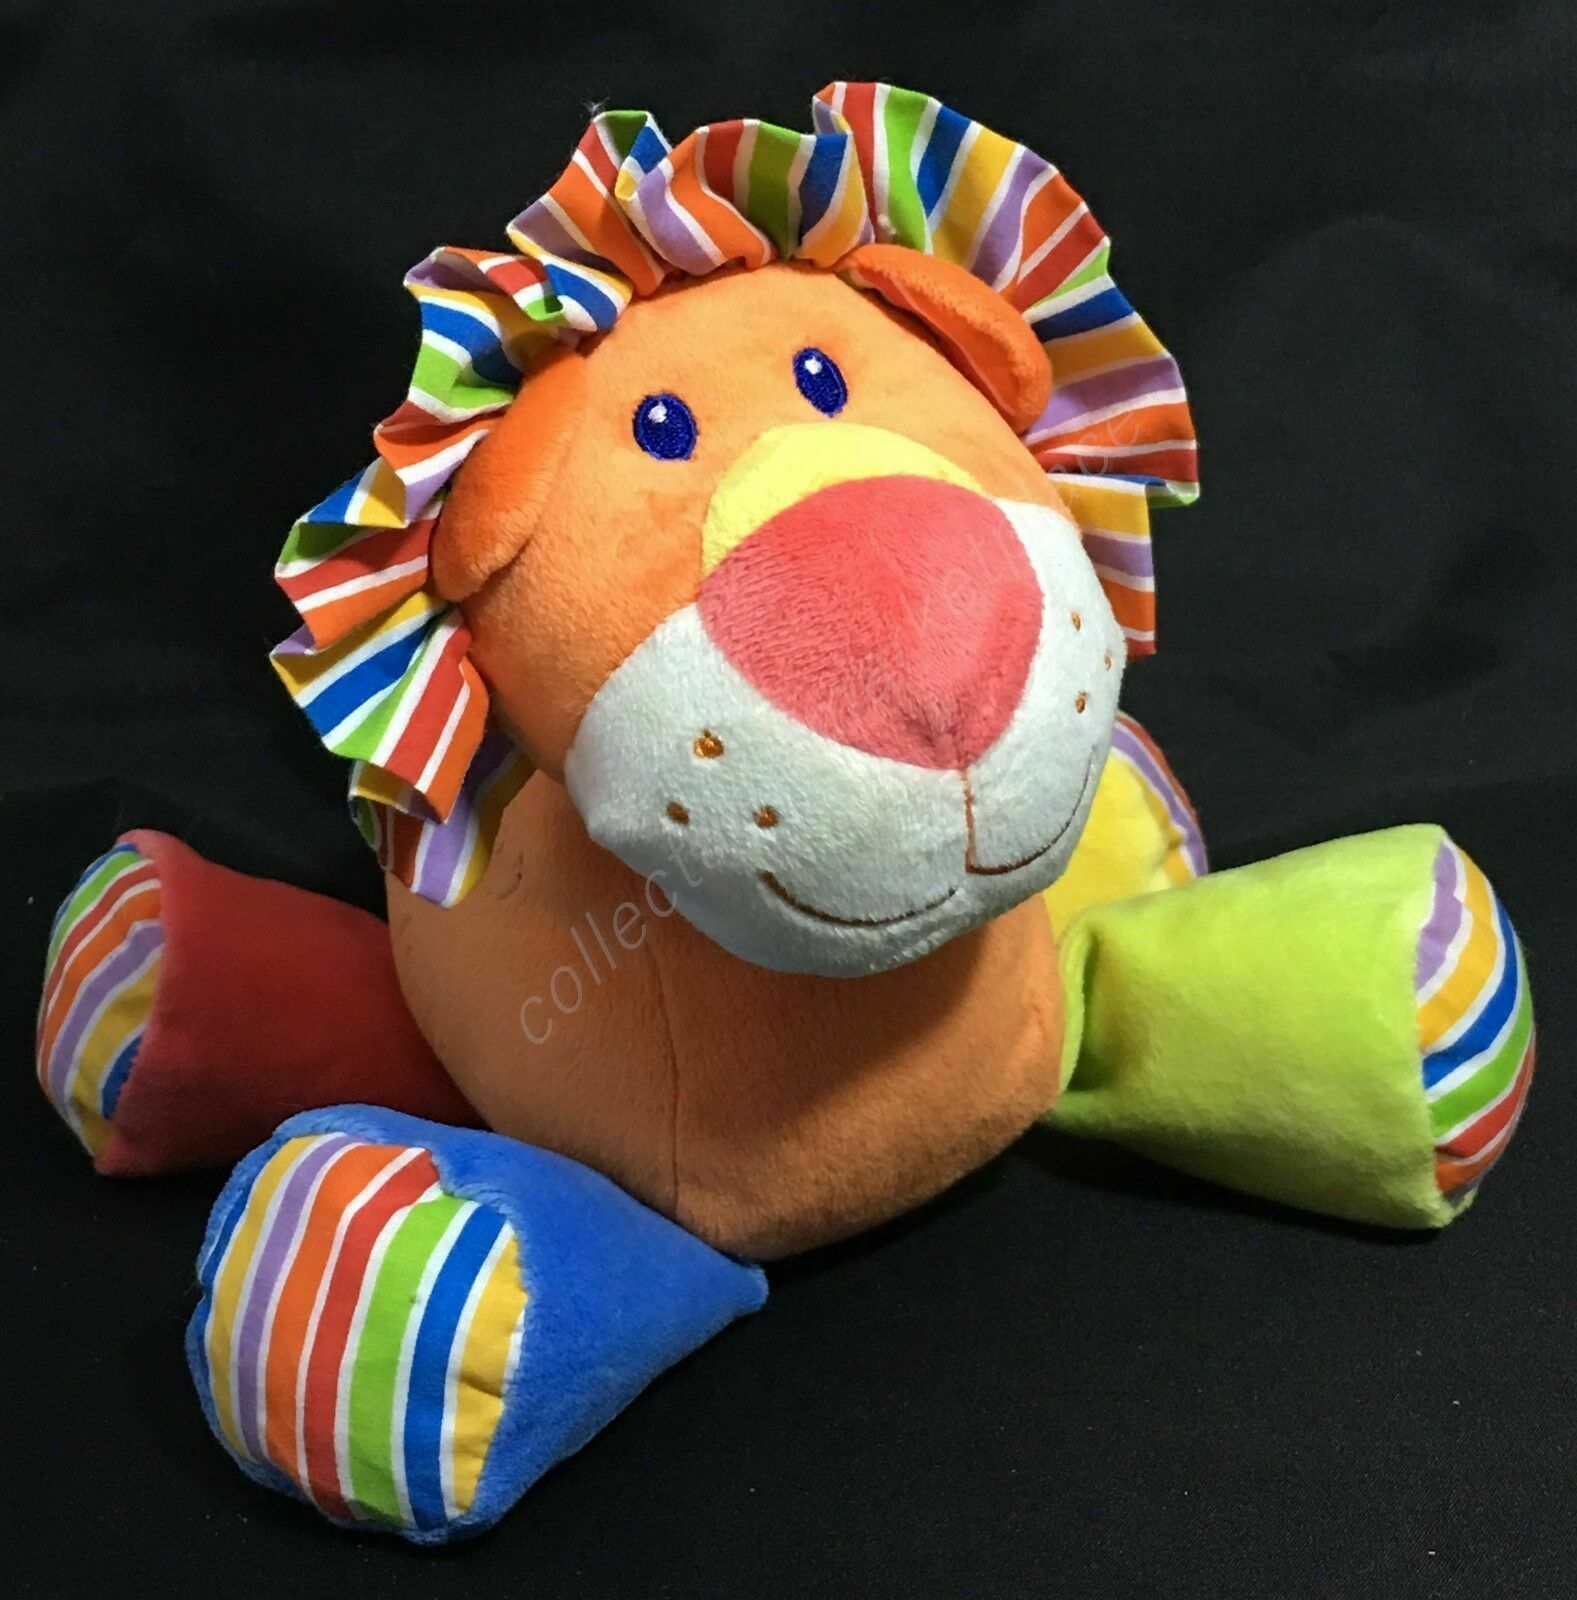 Primary image for First Impressions Lion Plush Stuffed Animal Toy Orange Sewn Eyes Soft